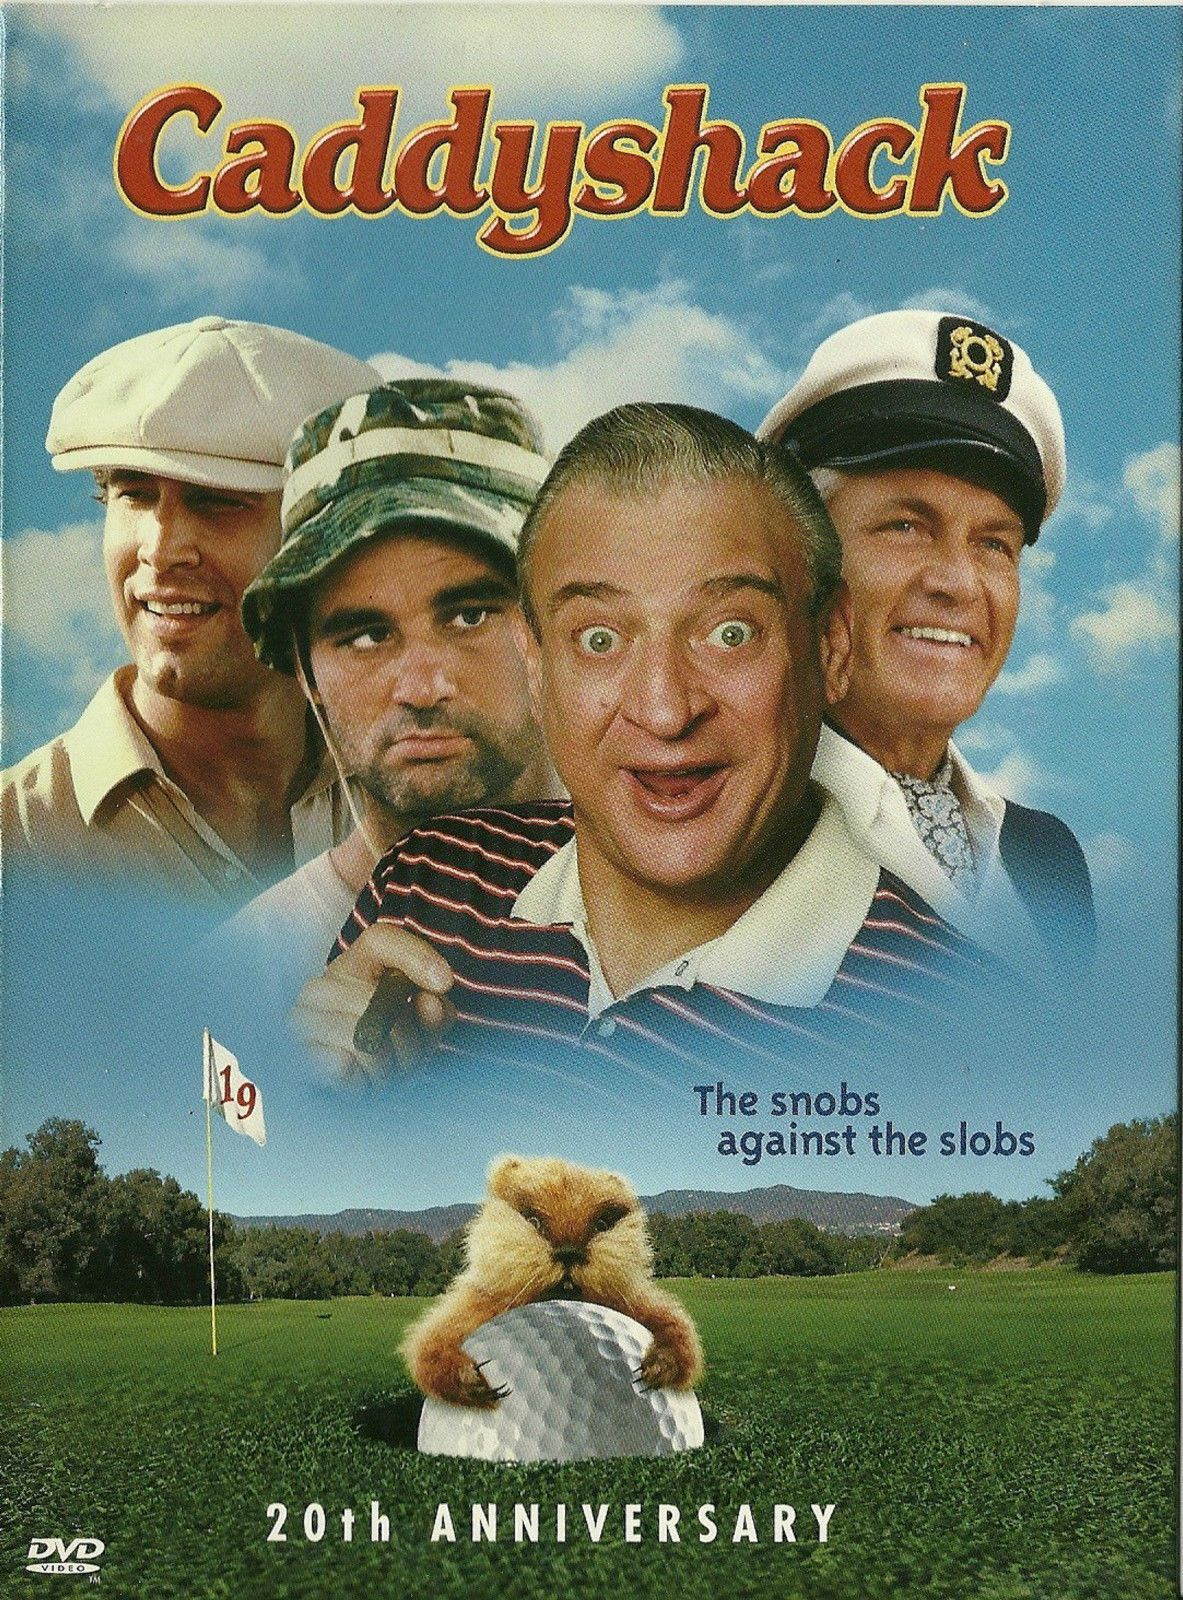 R I P December 7 1923 Aug 26 1986 Ted Knight Caddyshack Funny Movies Comedy Movies Caddyshack Movie